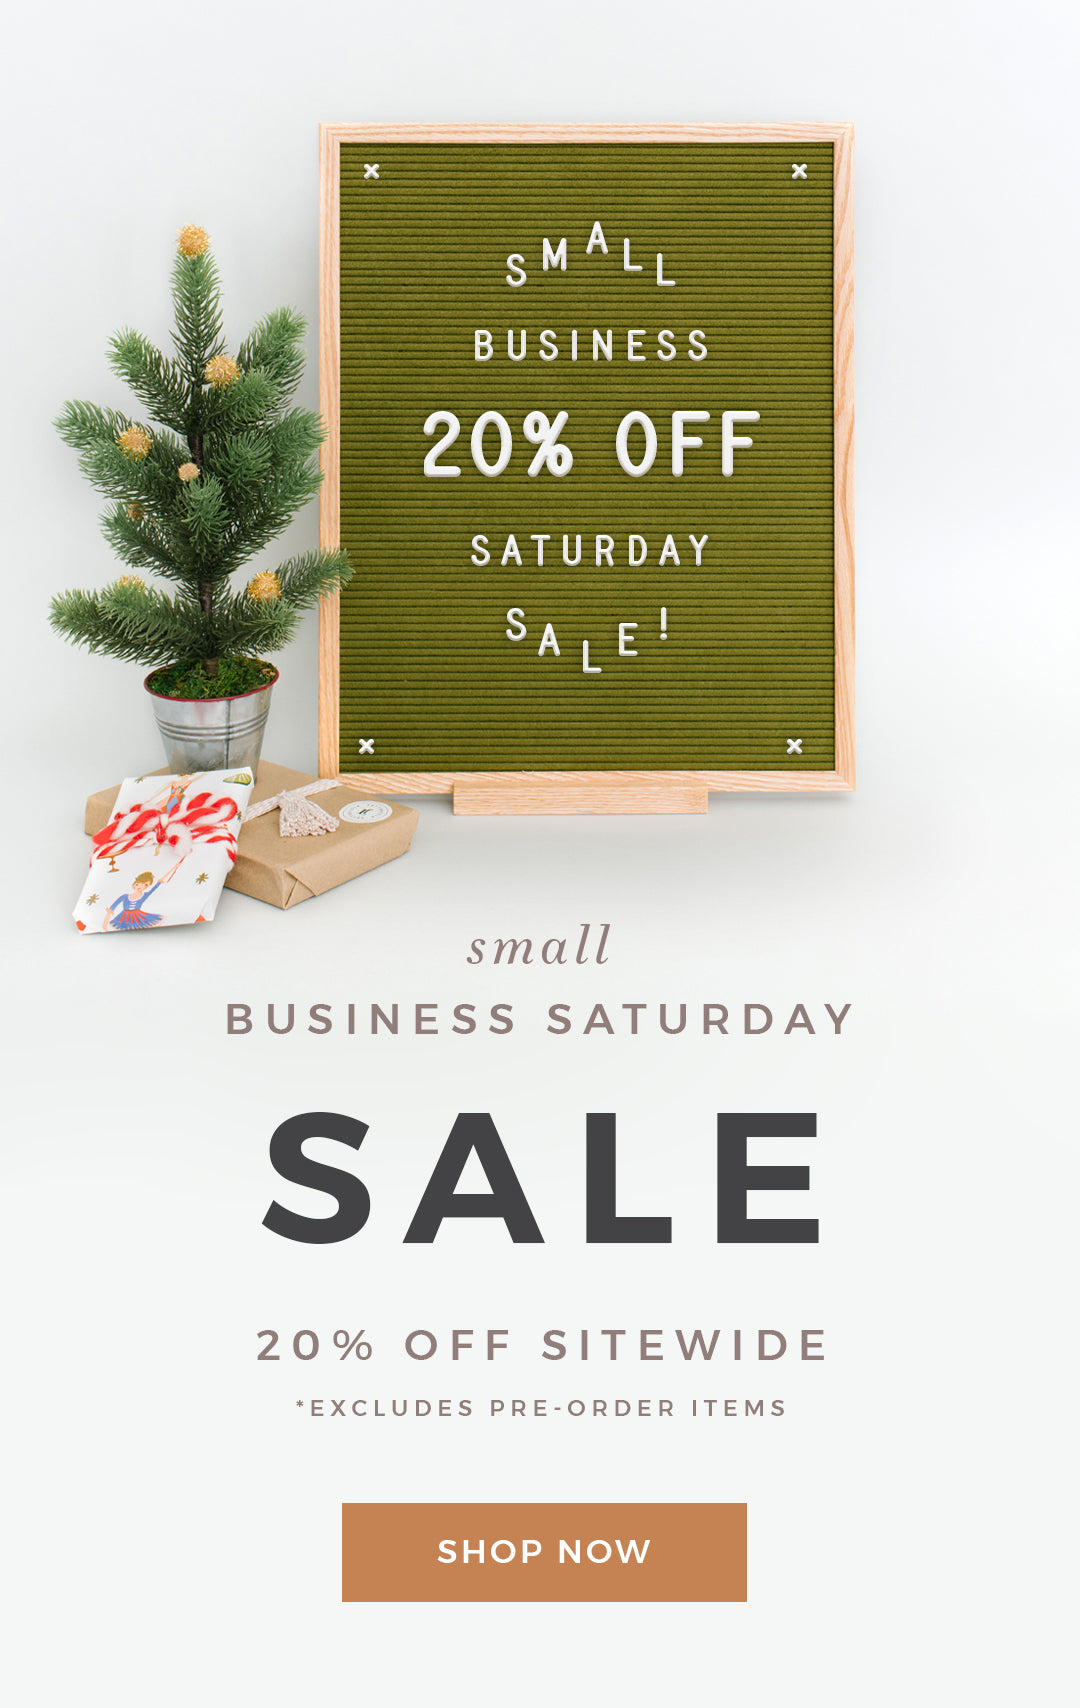 Small Business Saturday at Letterfolk